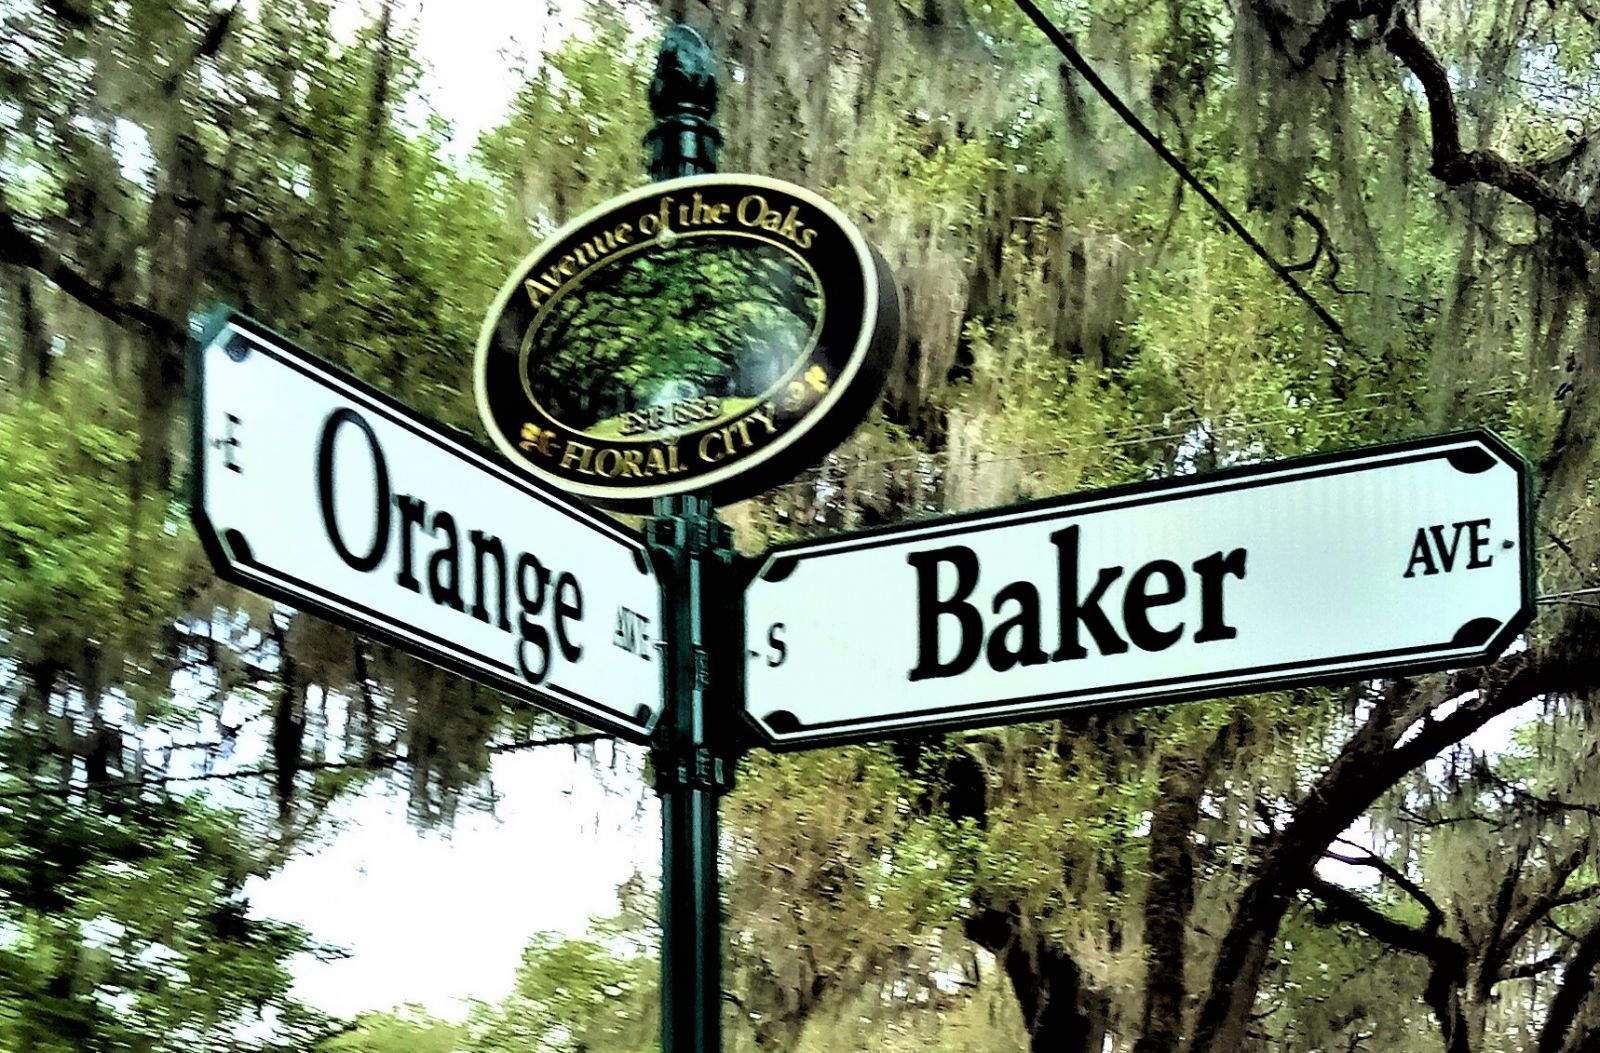 street signs at corner of Baker St and Orange Ave